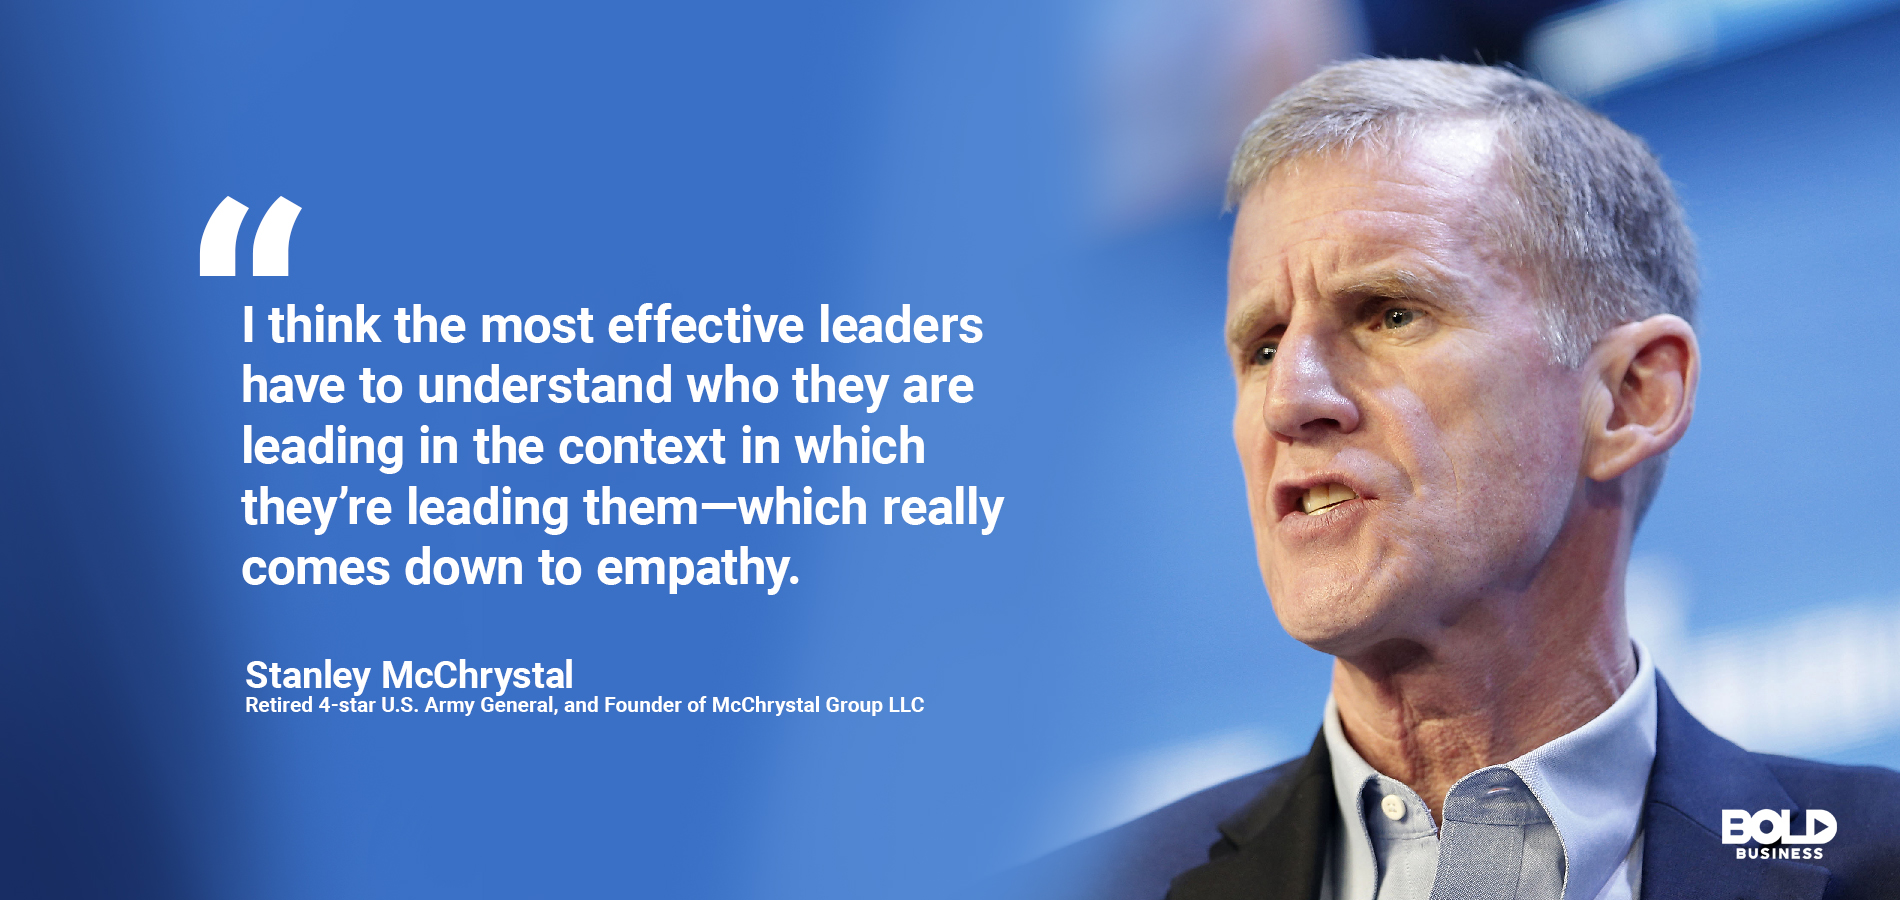 McChrystal talks about being bold in leadership